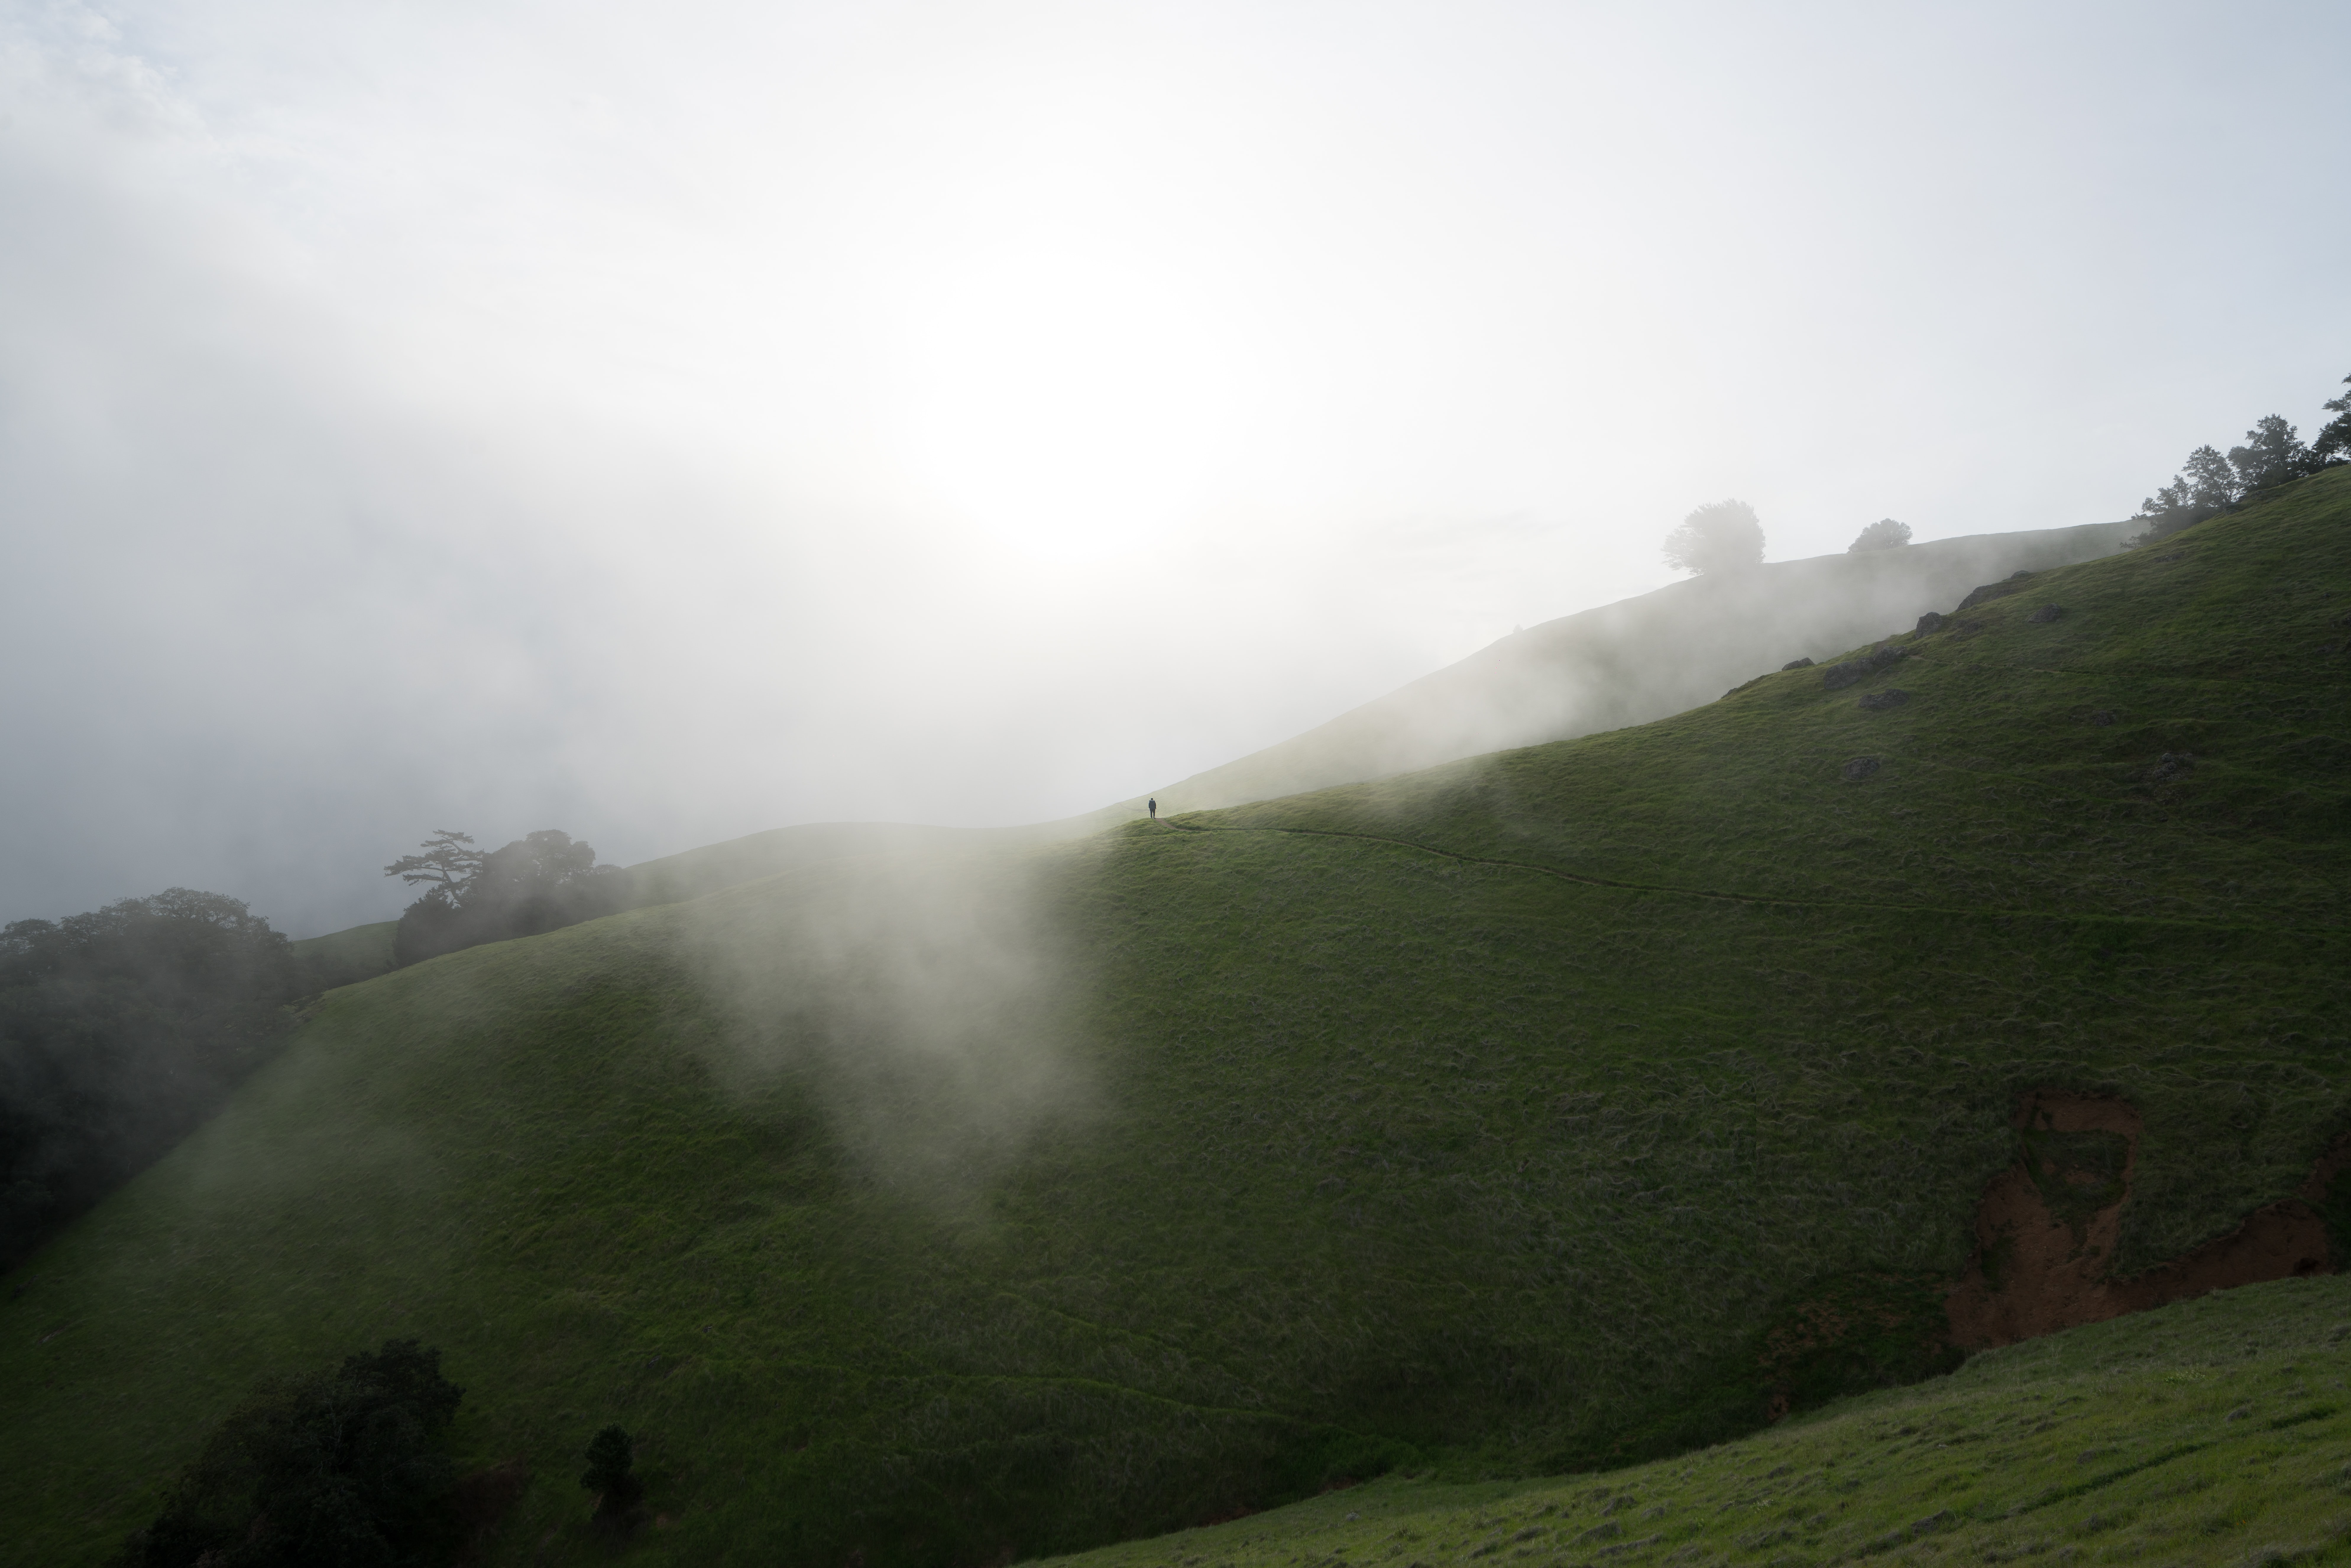 Fog on a misty morning over rolling green hills